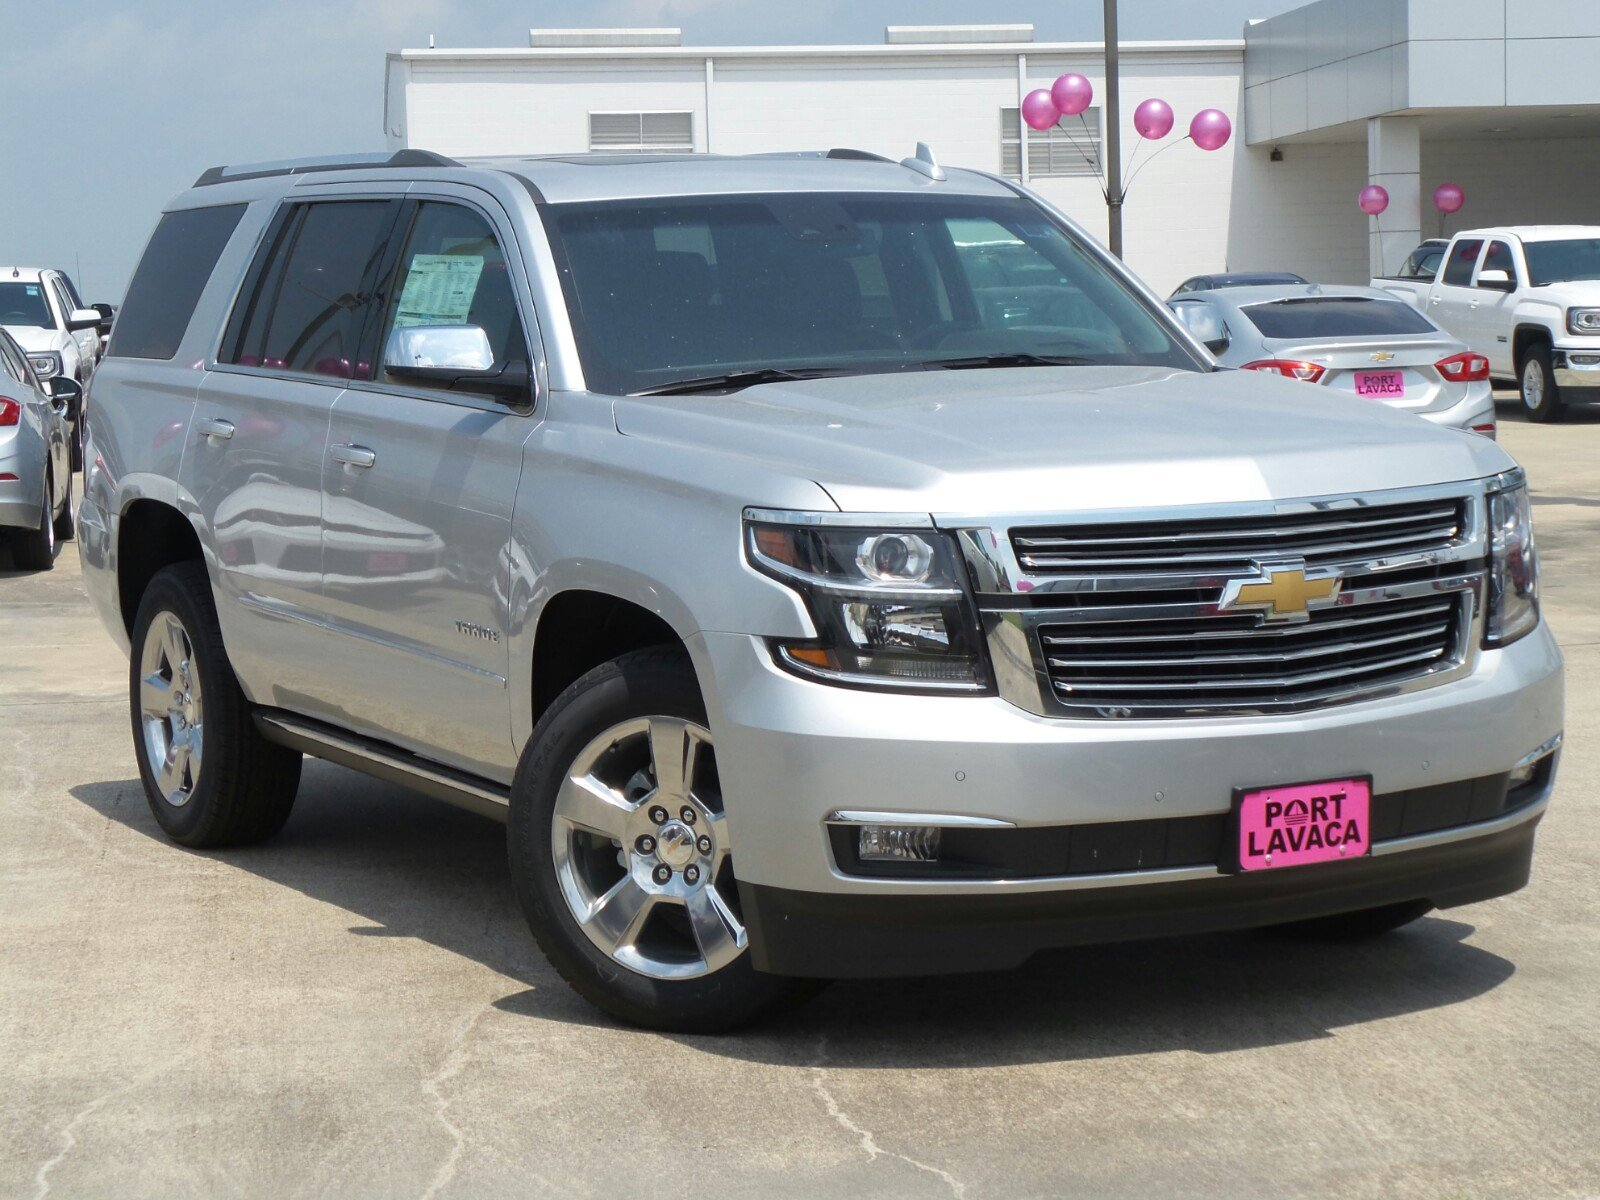 new 2017 chevrolet tahoe premier sport utility in port lavaca r228483 port lavaca chevrolet. Black Bedroom Furniture Sets. Home Design Ideas